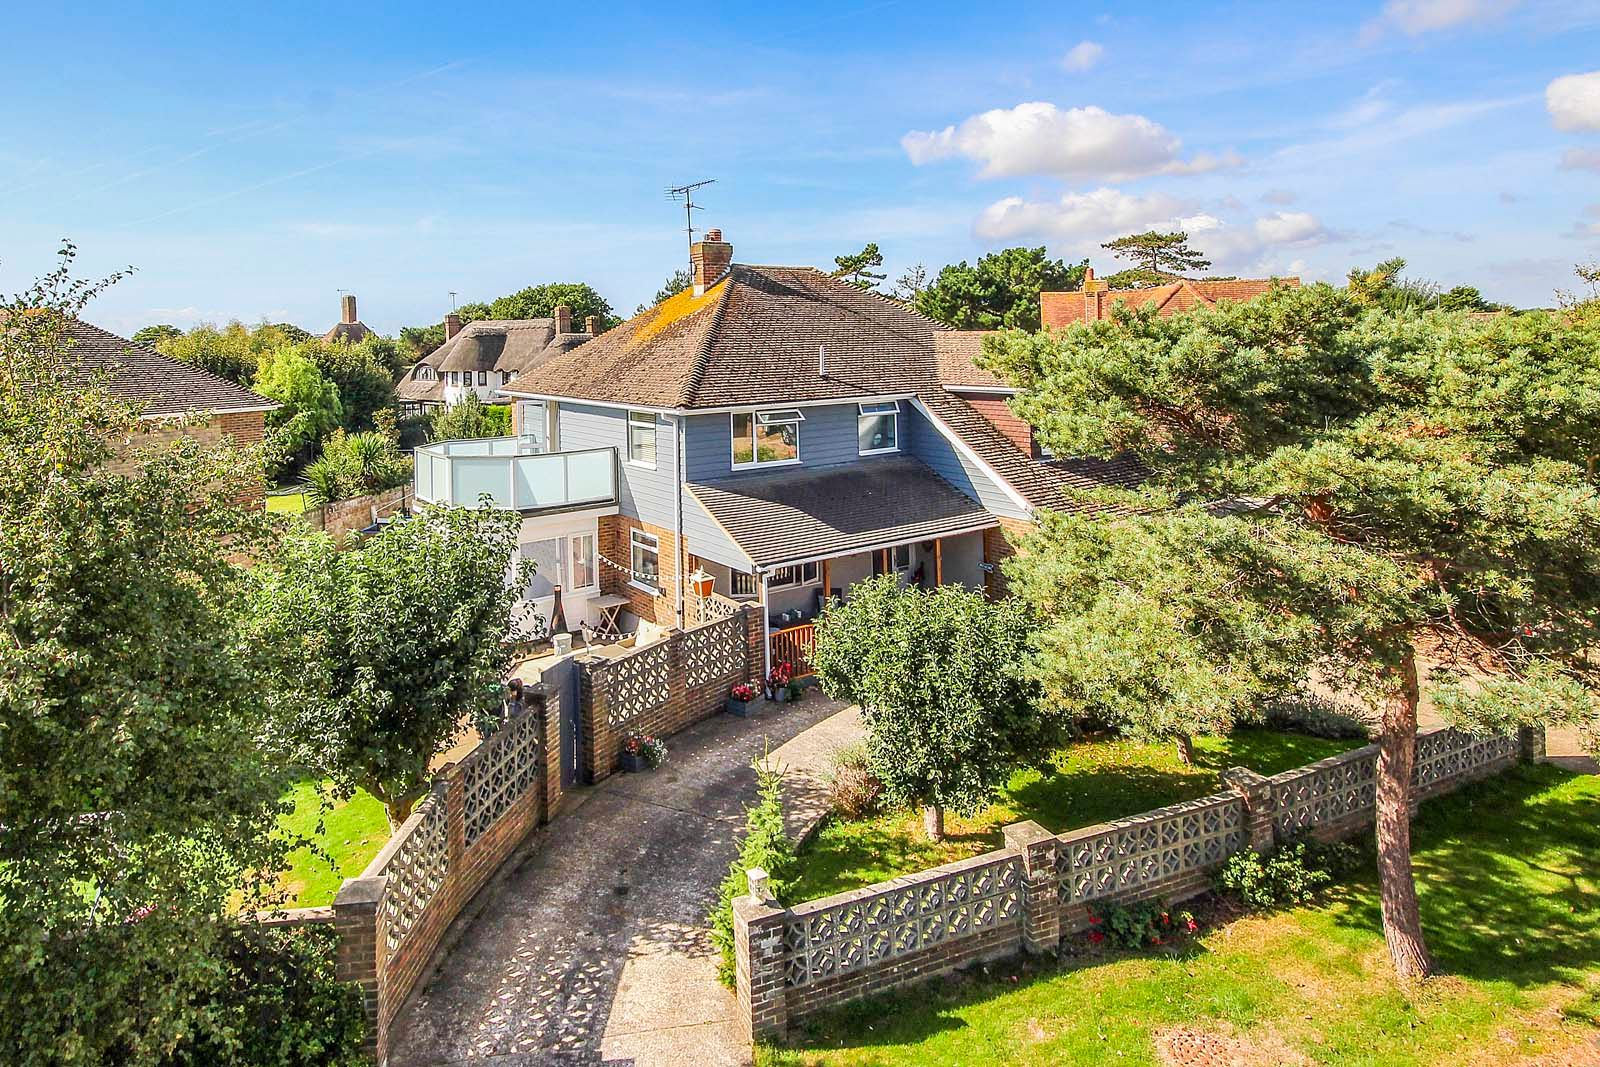 4 bed house for sale in COMPLETED 23/8/19 The Roundway 16